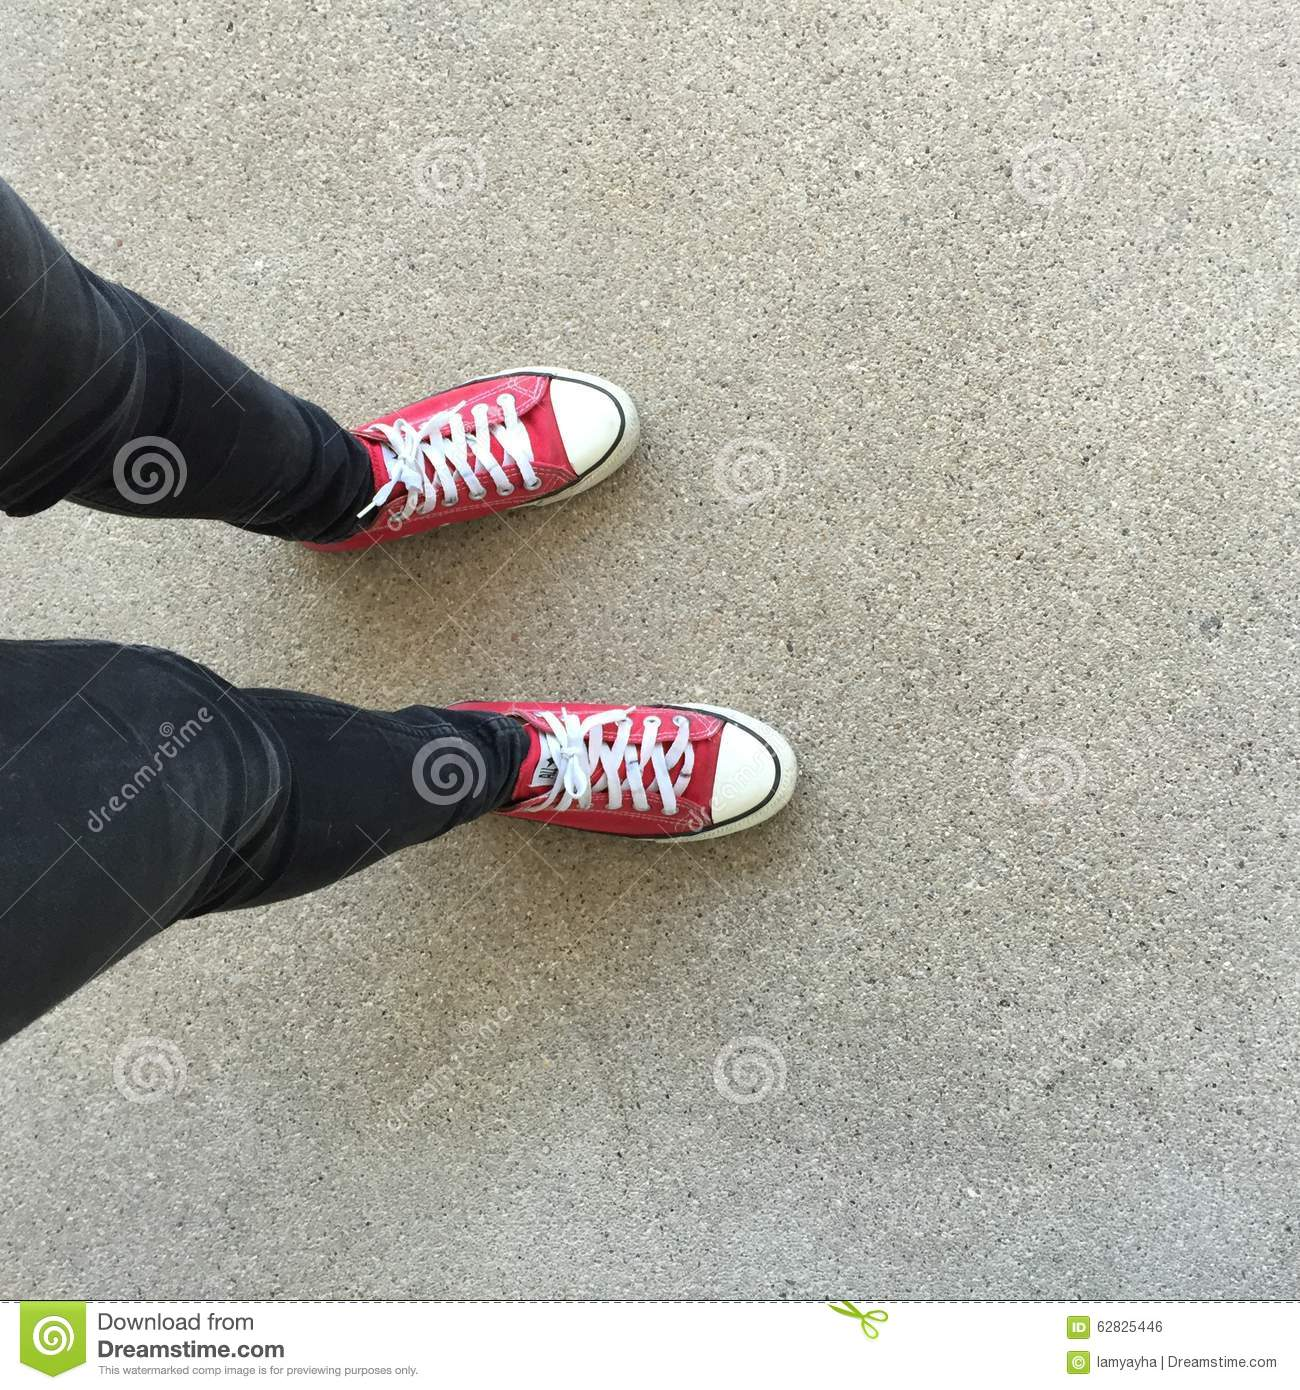 Gumshoes on urban grunge background. Image of legs in boots on city street. Feet shoes walking in outdoor. Youth Selphie Modern hi